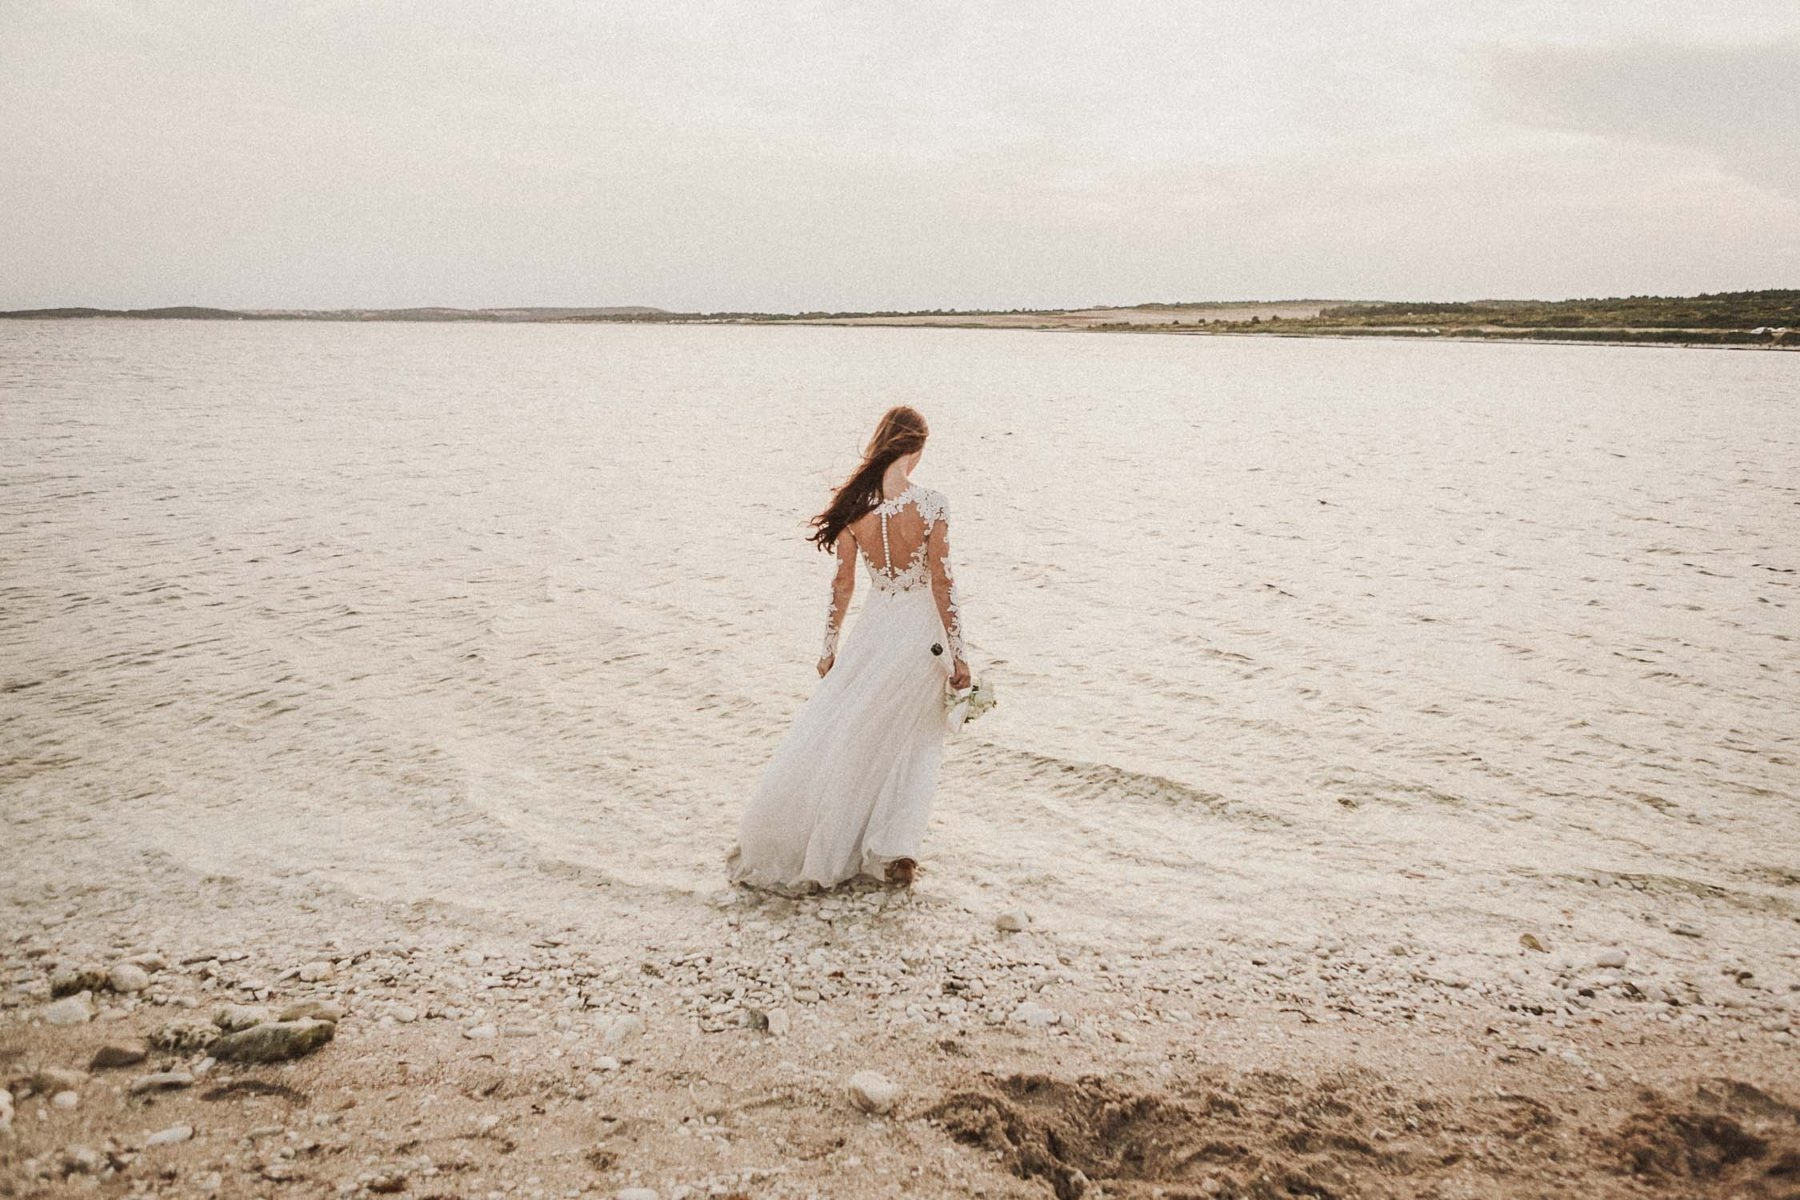 Destination Wedding Photographer | Robert Pljuscec (@robertpljuscec) Cover Image